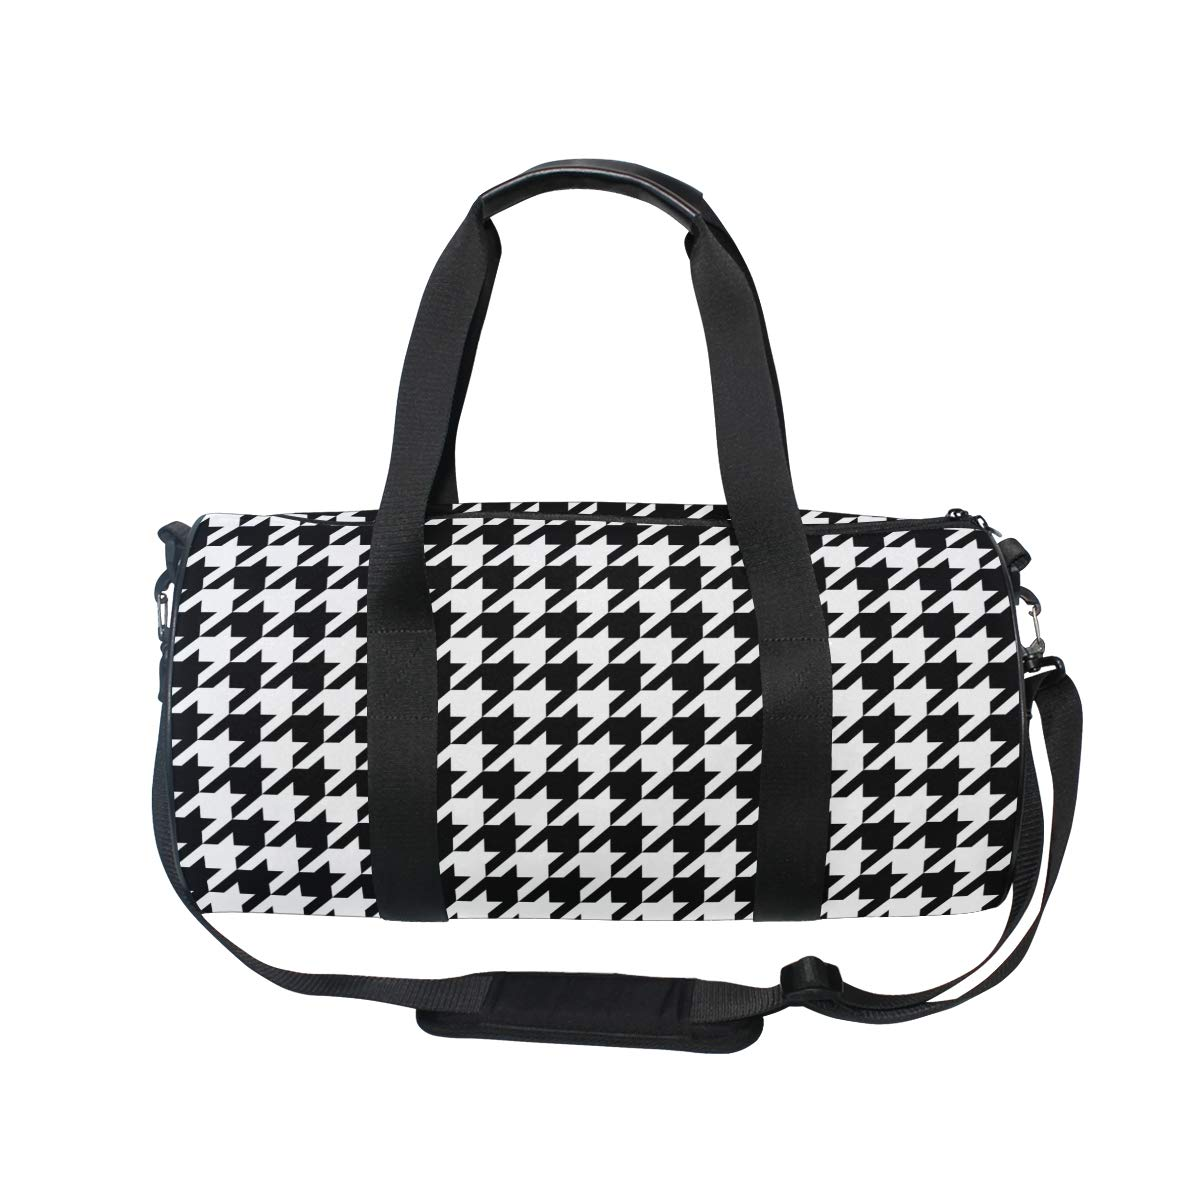 Classic Houndstooth Travel Duffel Bag Sports Gym Duffel Bag Luggage Handbag for Men Women